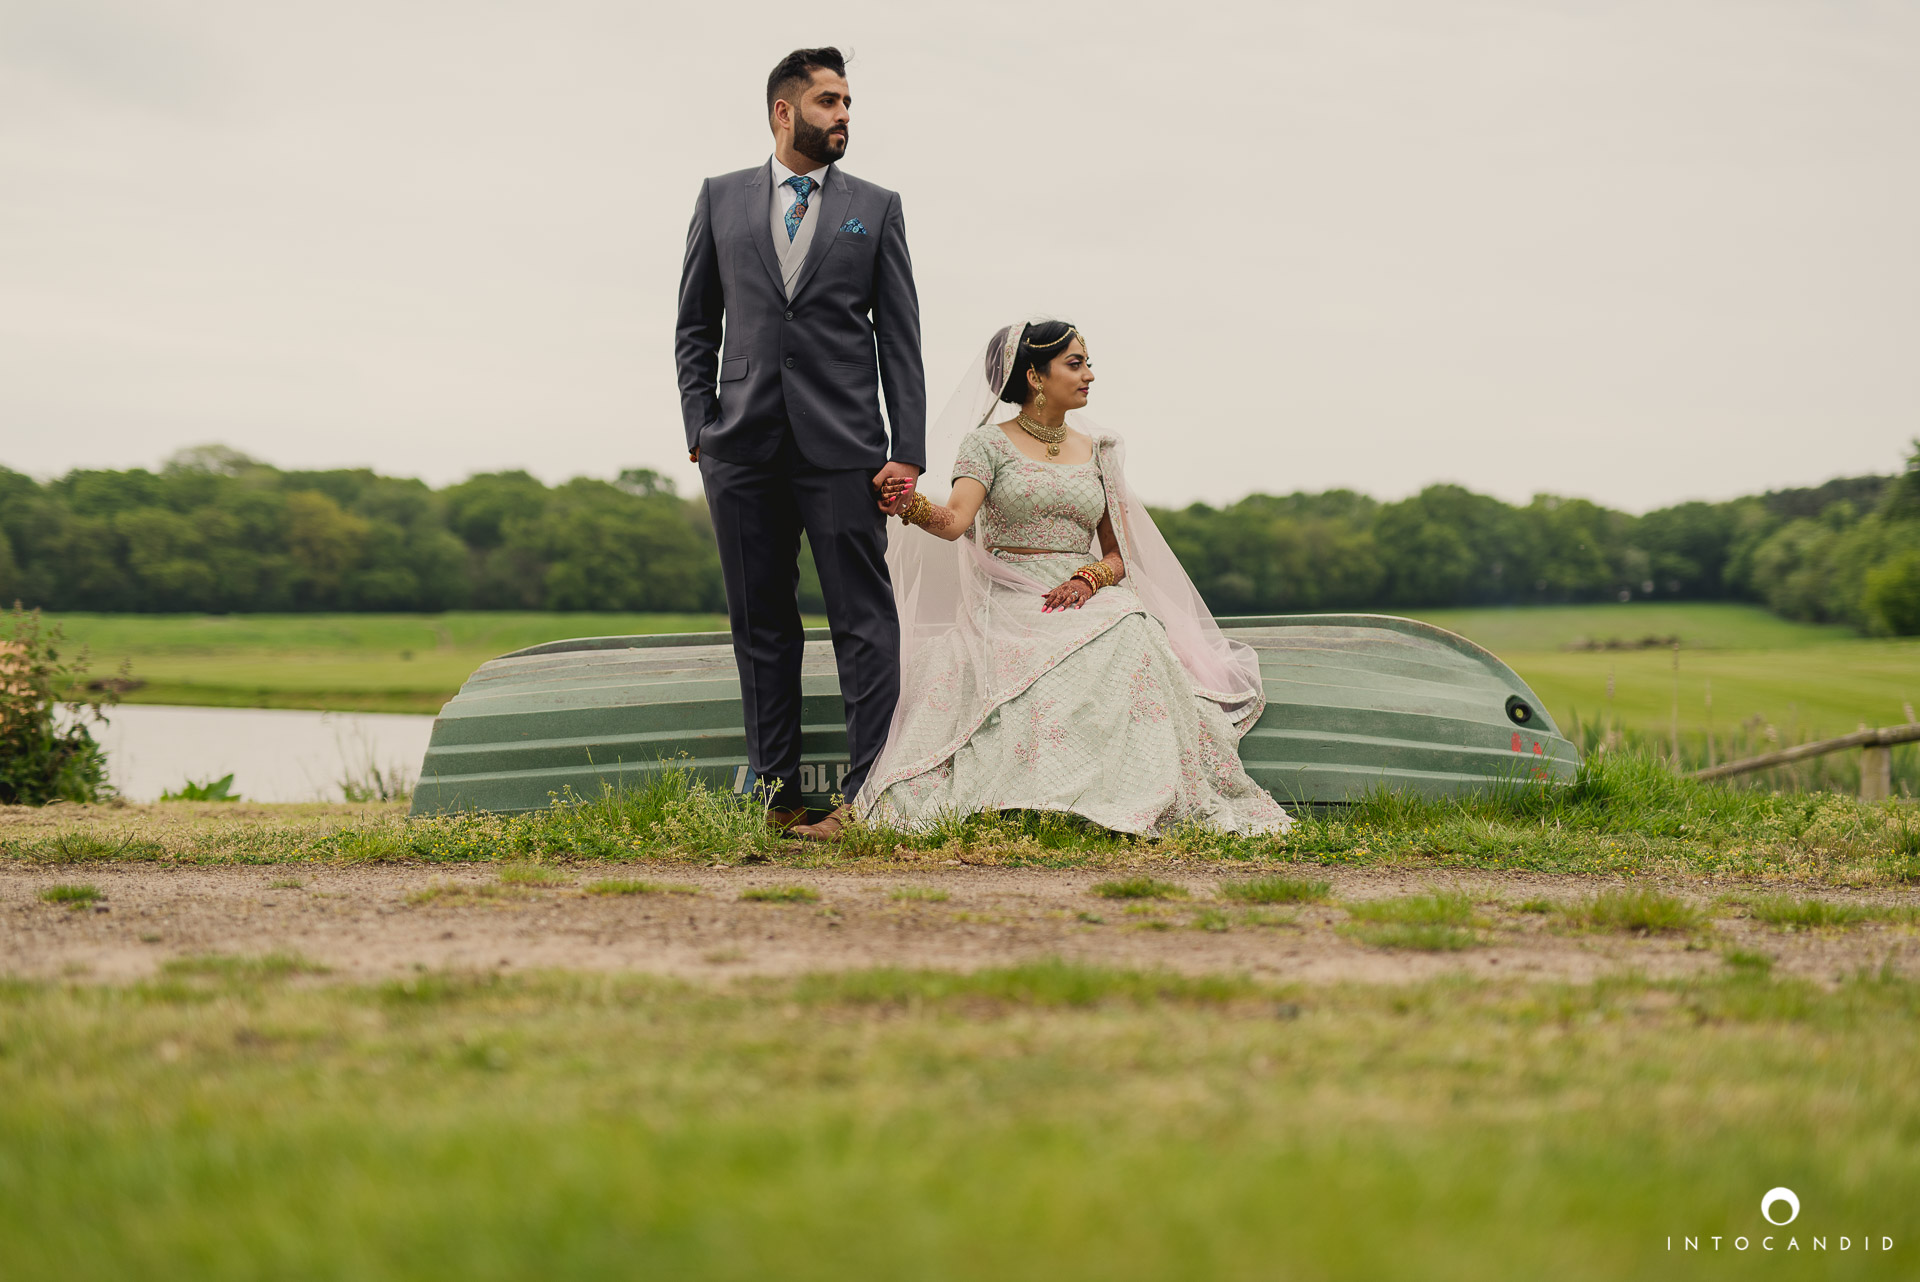 London_Wedding_Photographer_Intocandid_Photography_Ketan & Manasvi_62.JPG